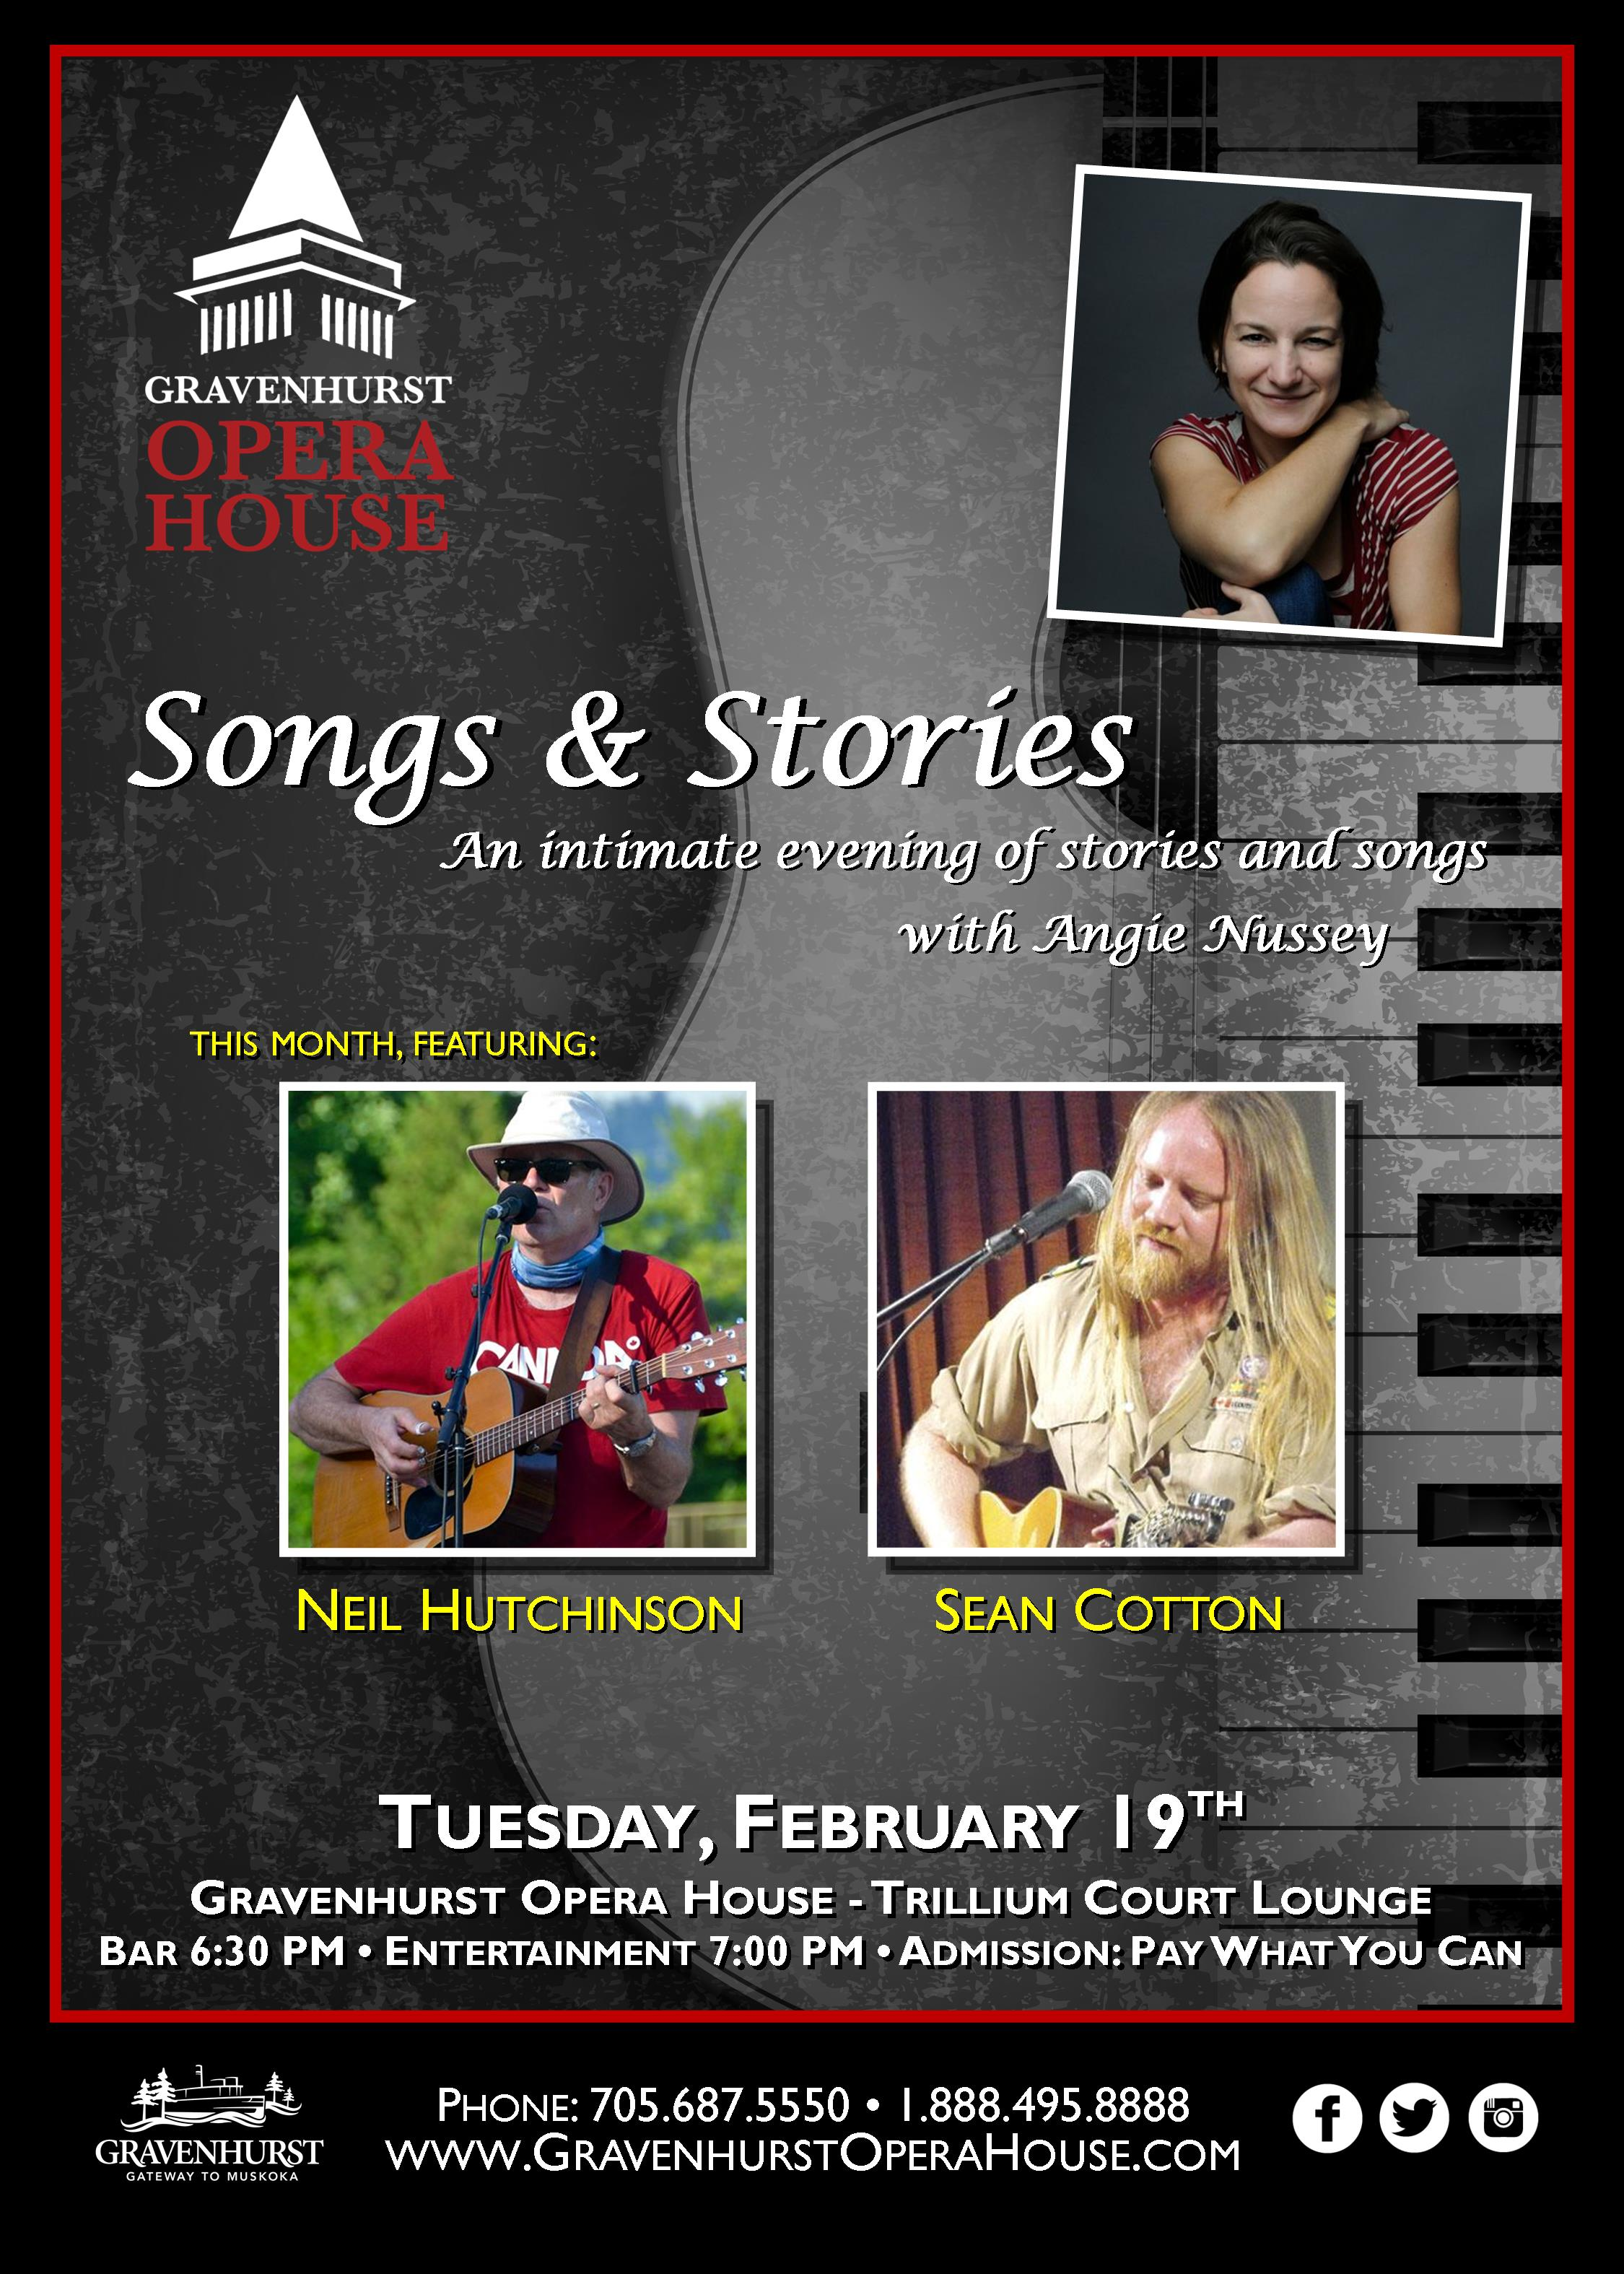 Promotional poster for the upcoming February installment of Songs & Stories happening February 19